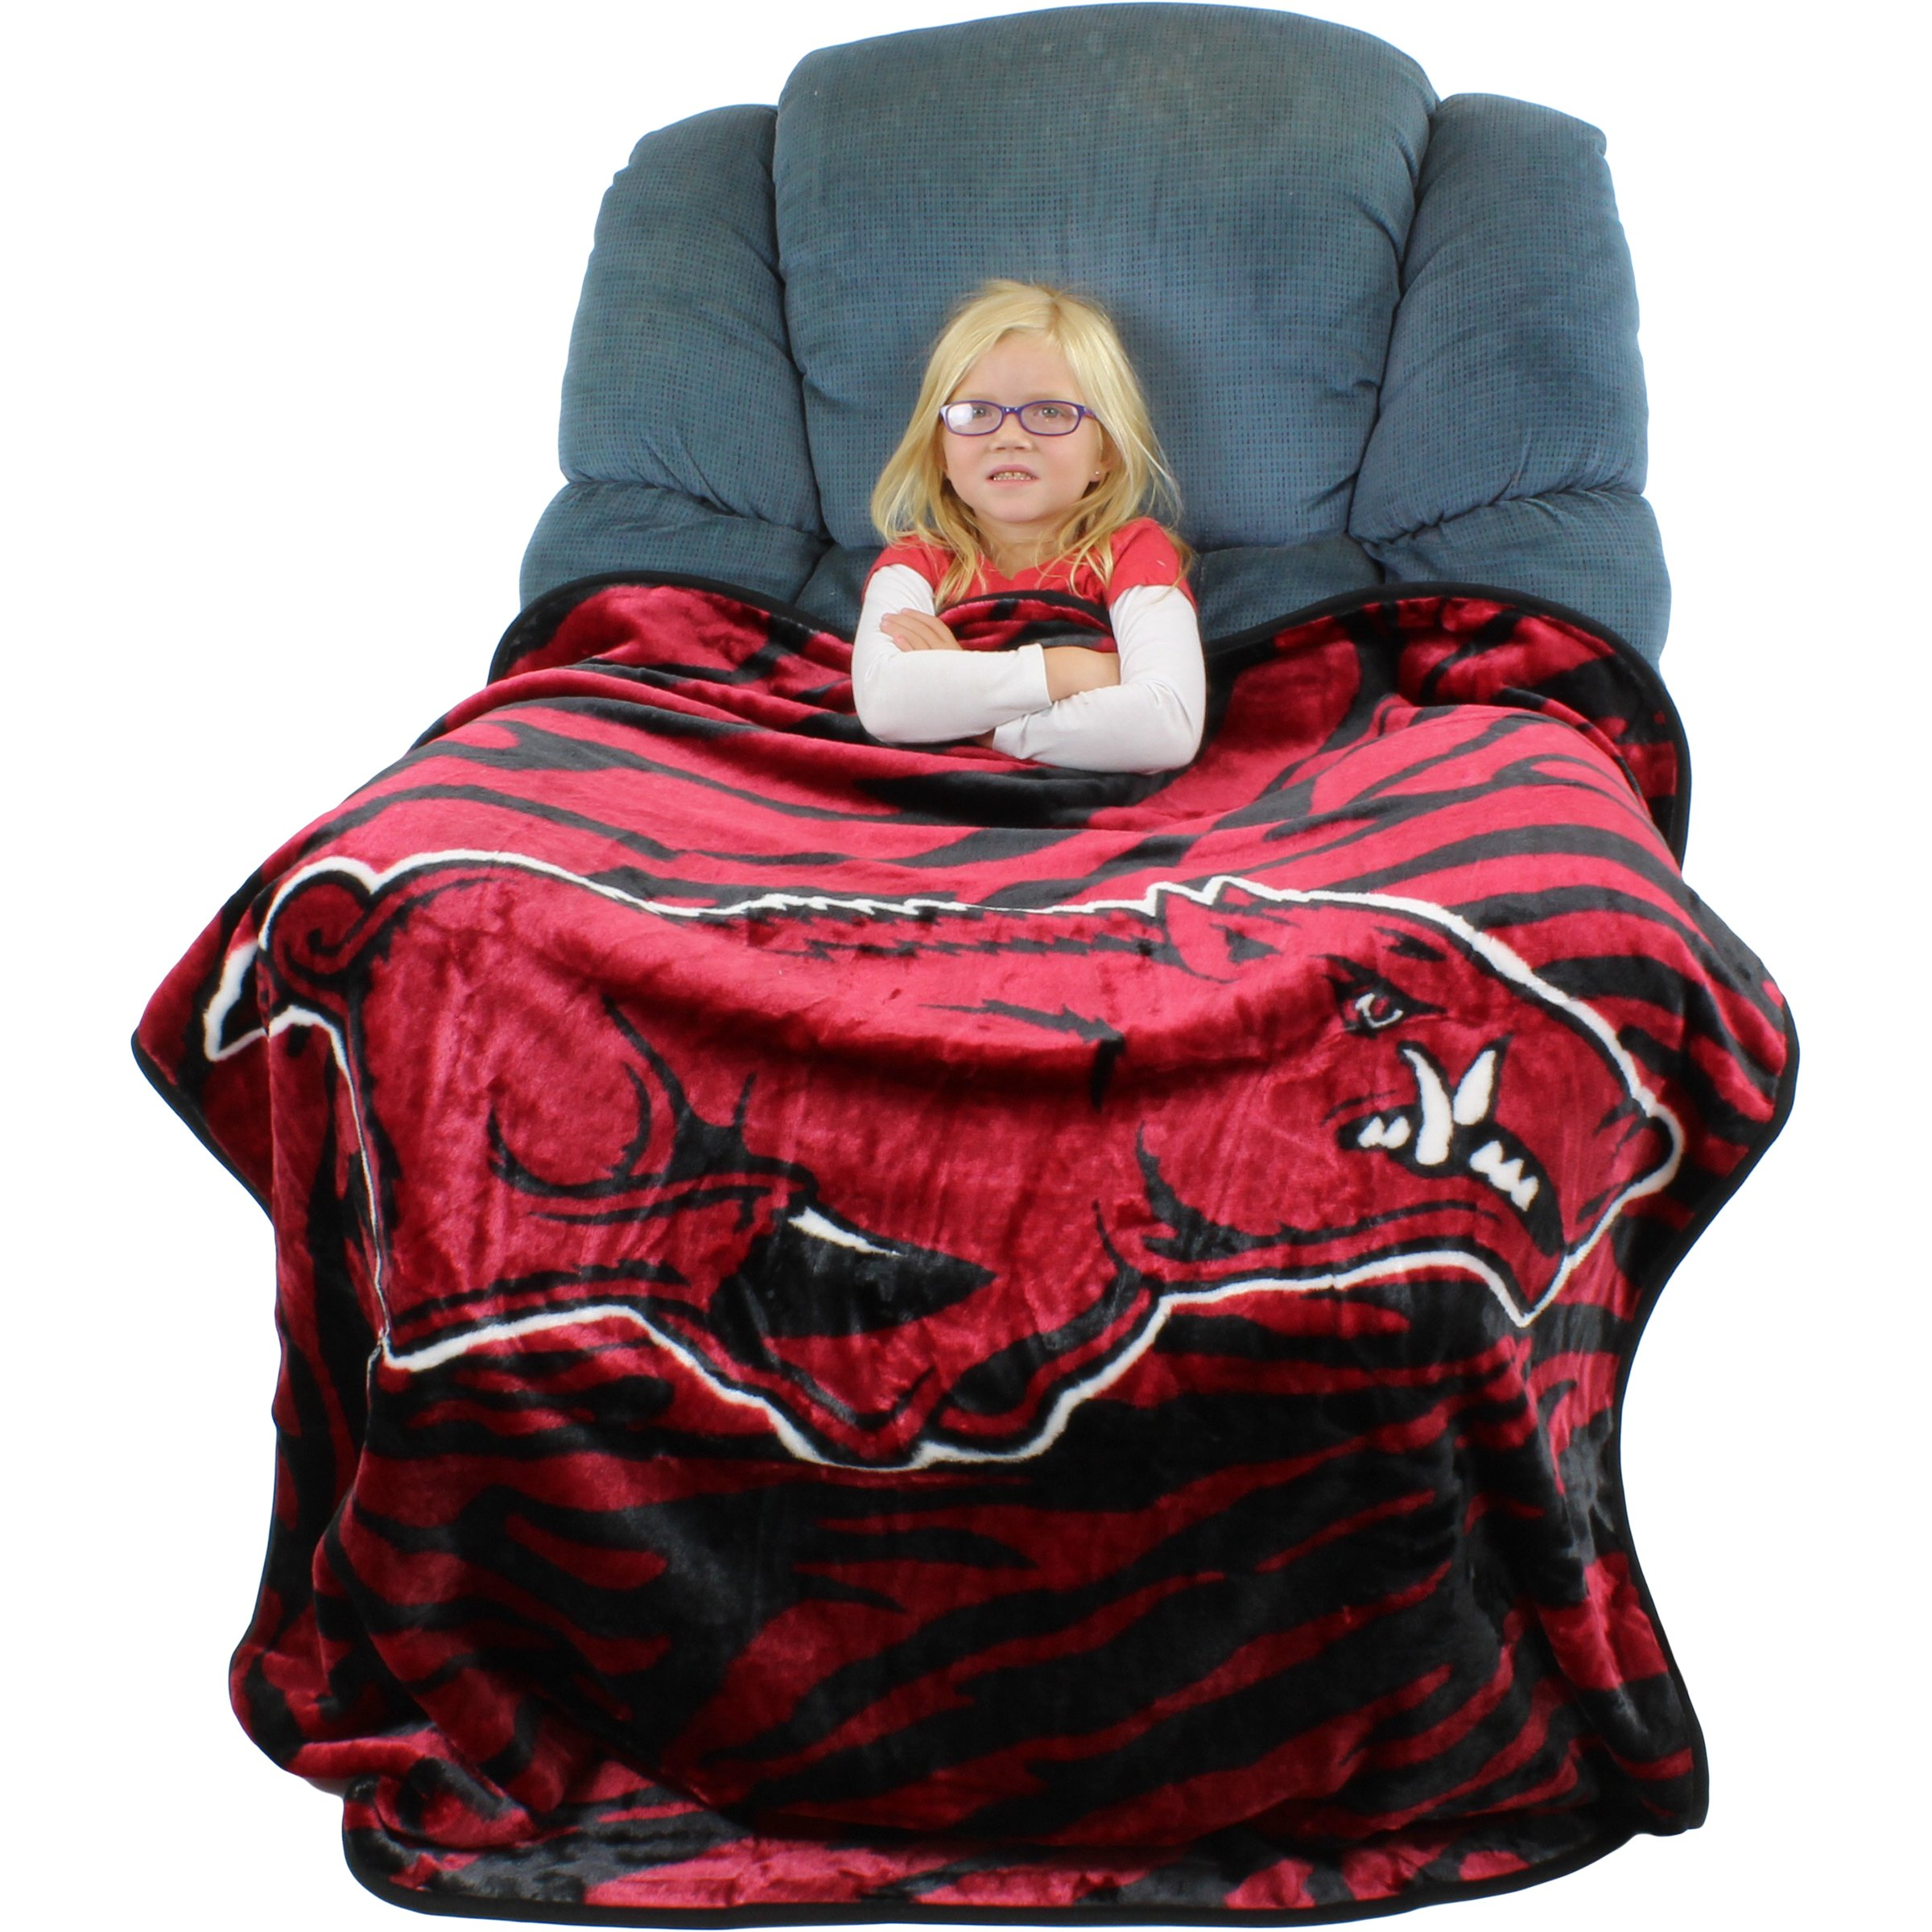 College Covers Arkansas Razorbacks Super Soft Raschel Throw Blanket, 50'' x 60''